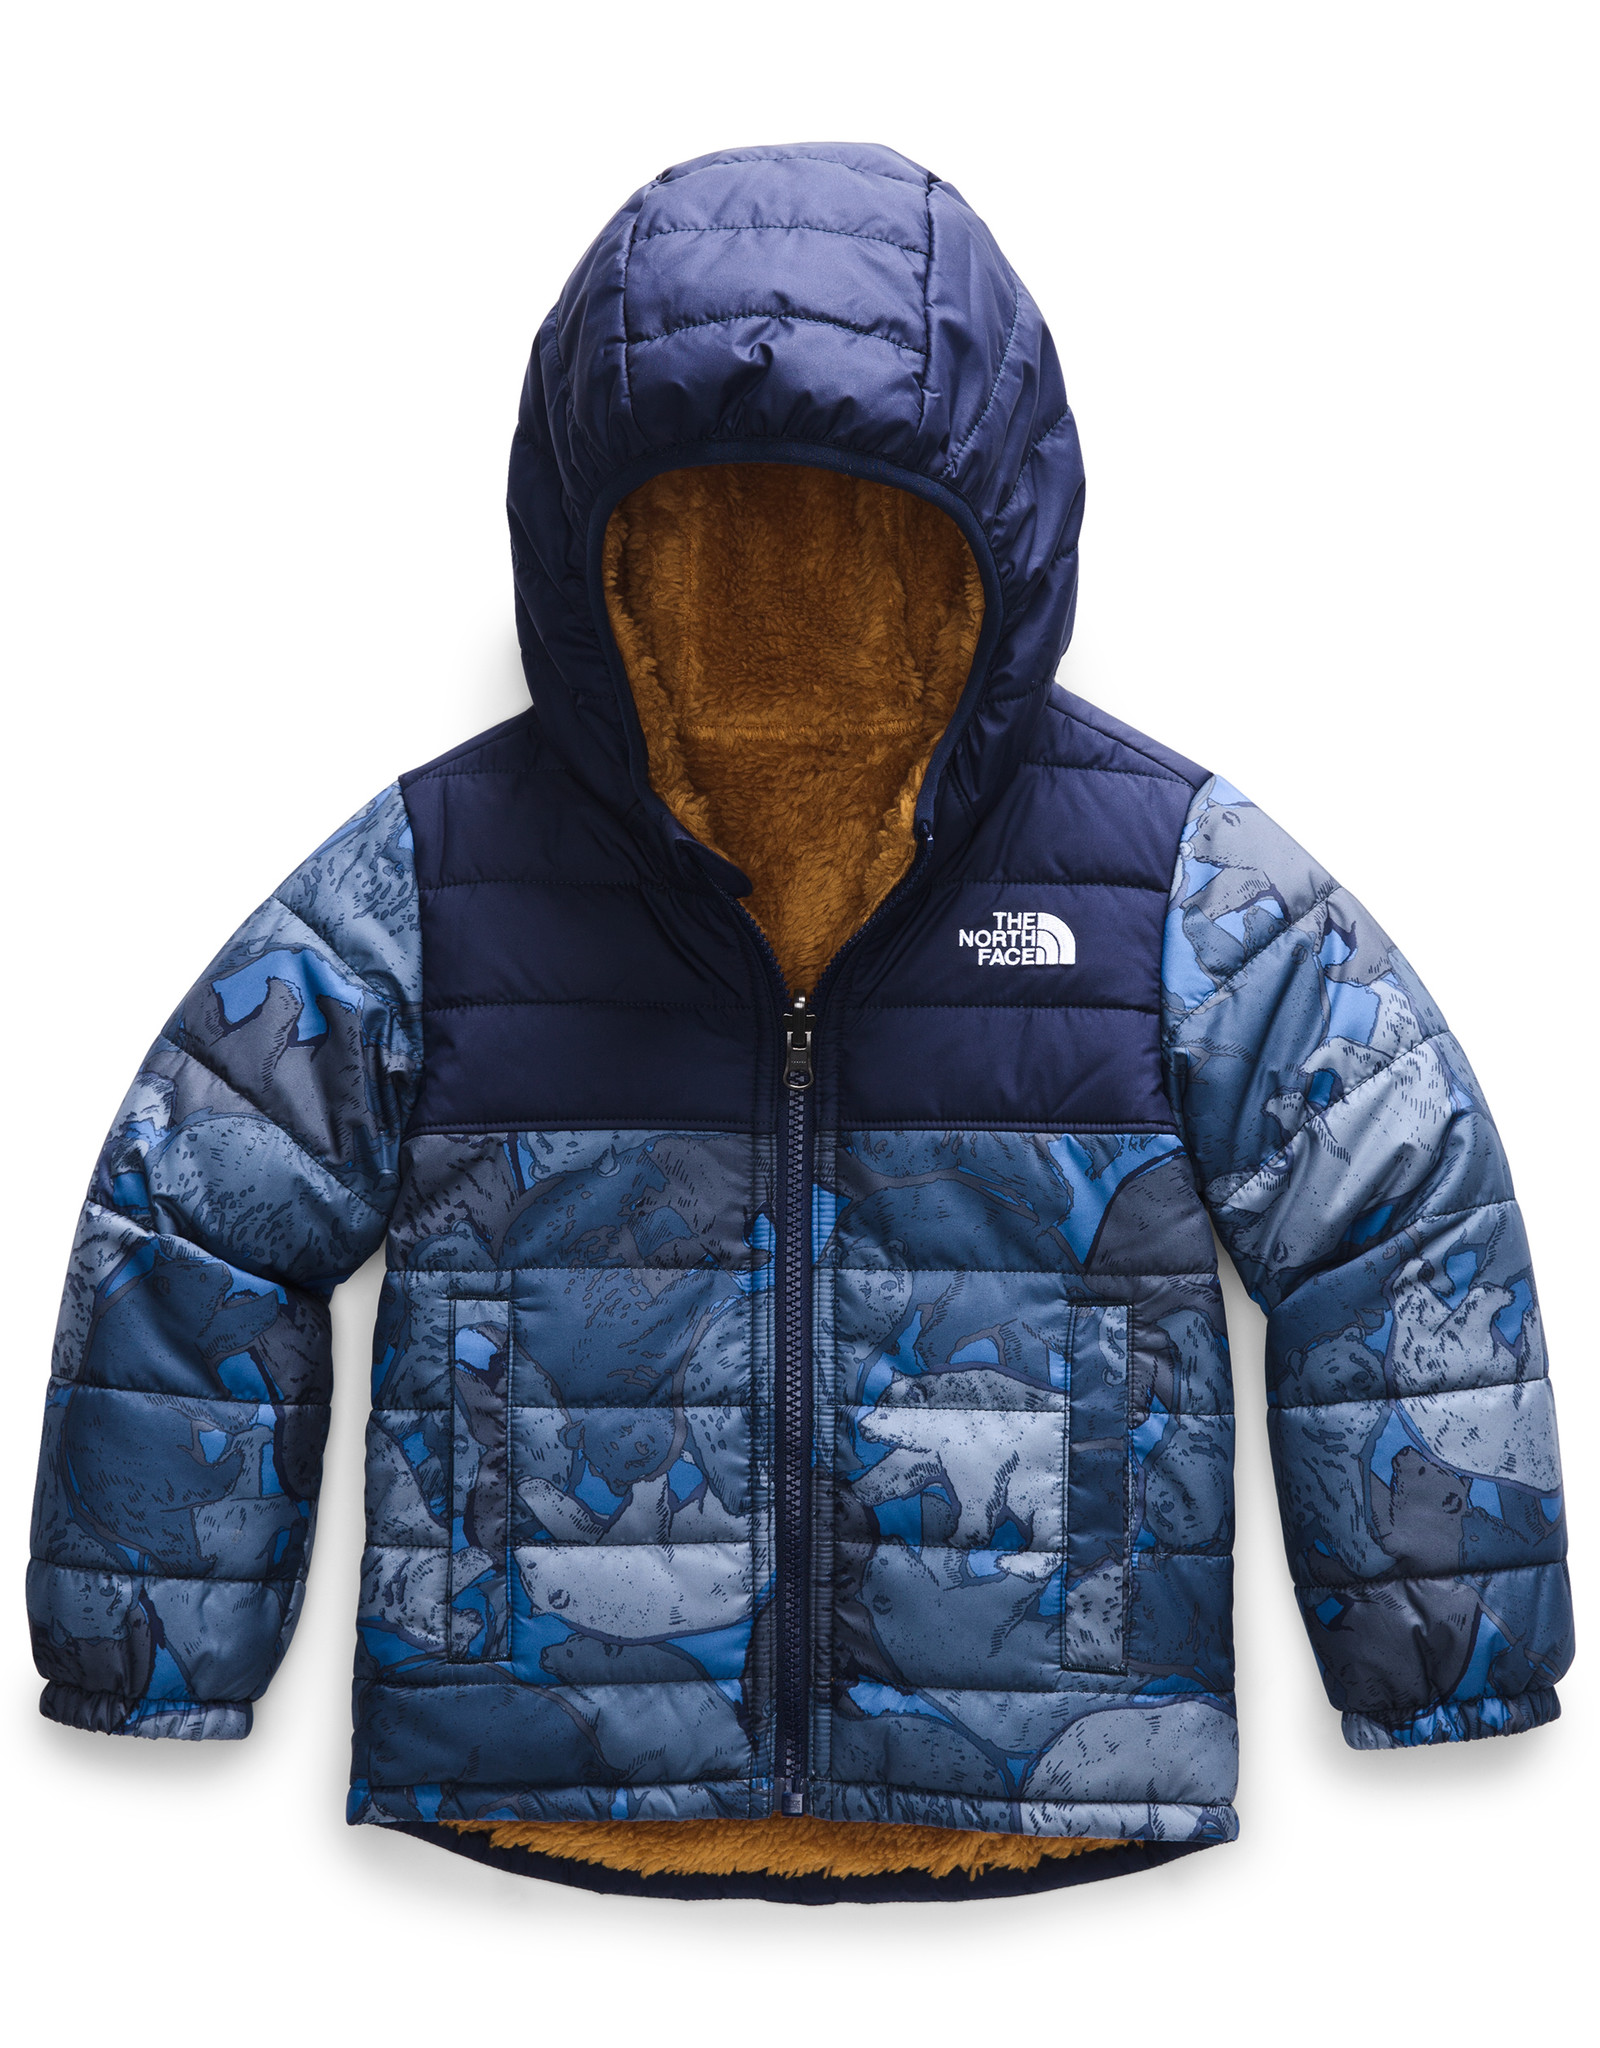 The North Face The North Face Toddler Boy's Reversible Mount Chimborazo Hoodie -W2020